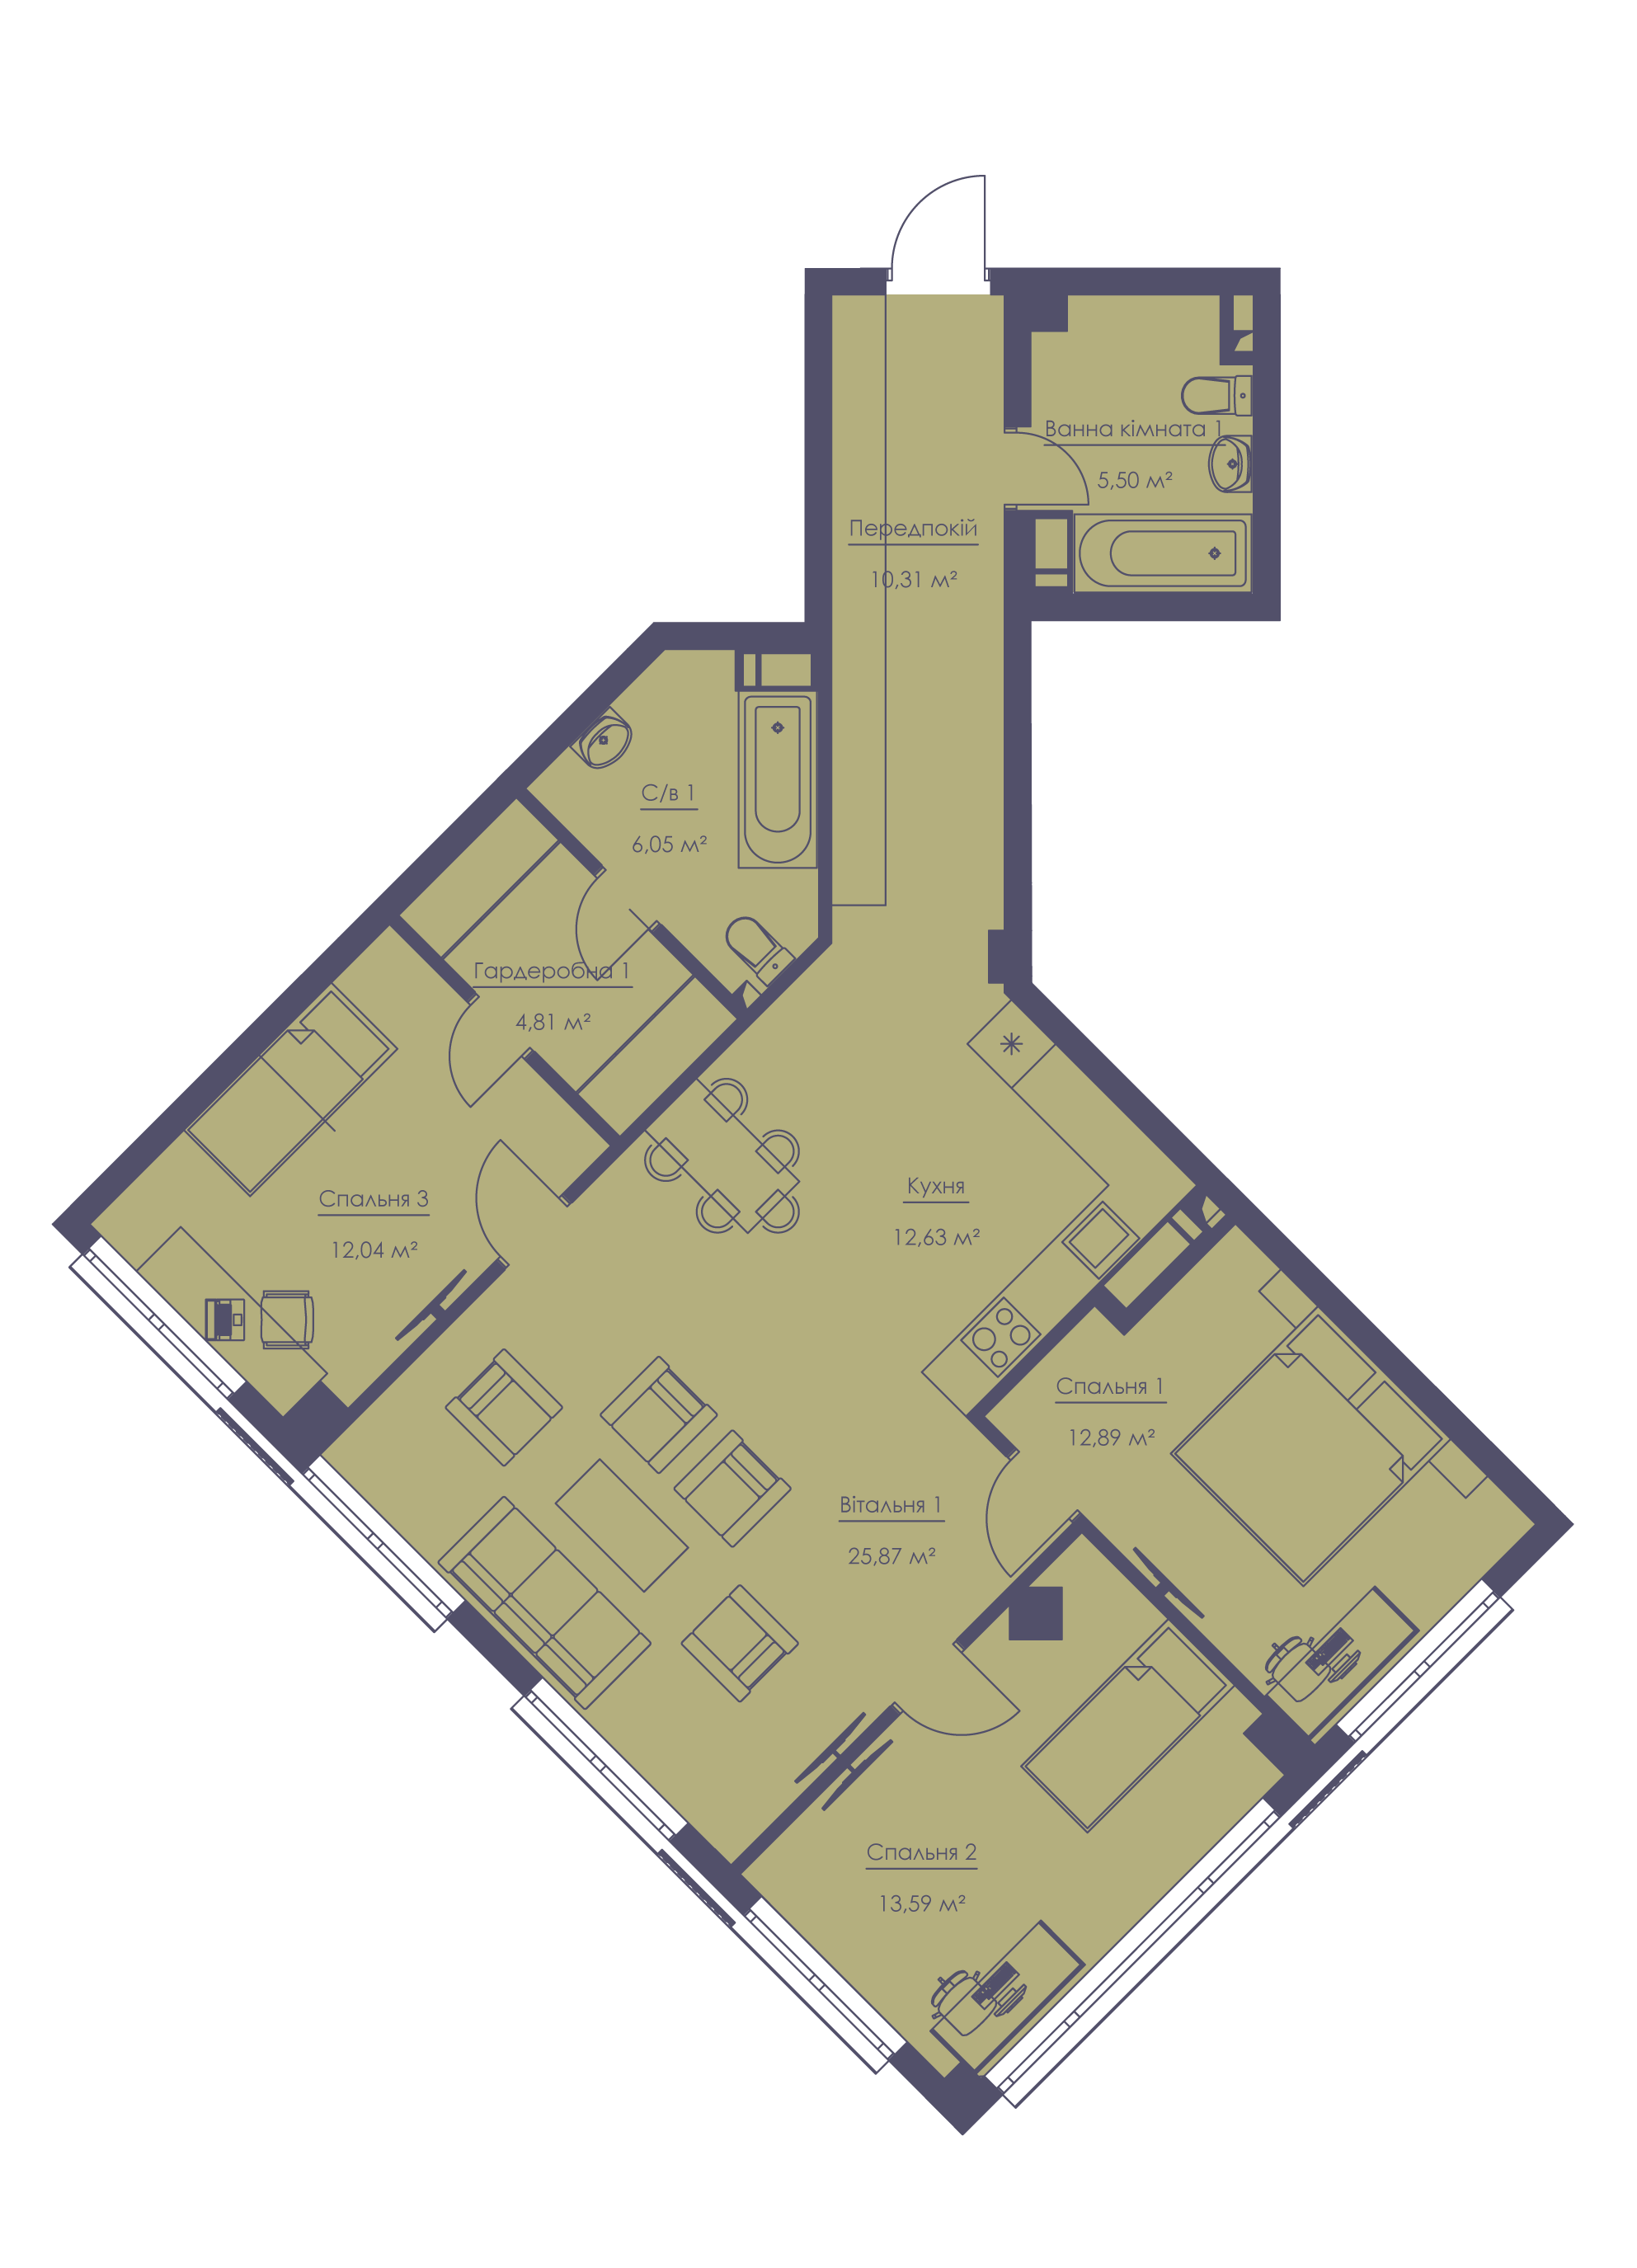 Apartment layout KV_81_4a_1_1_2-1